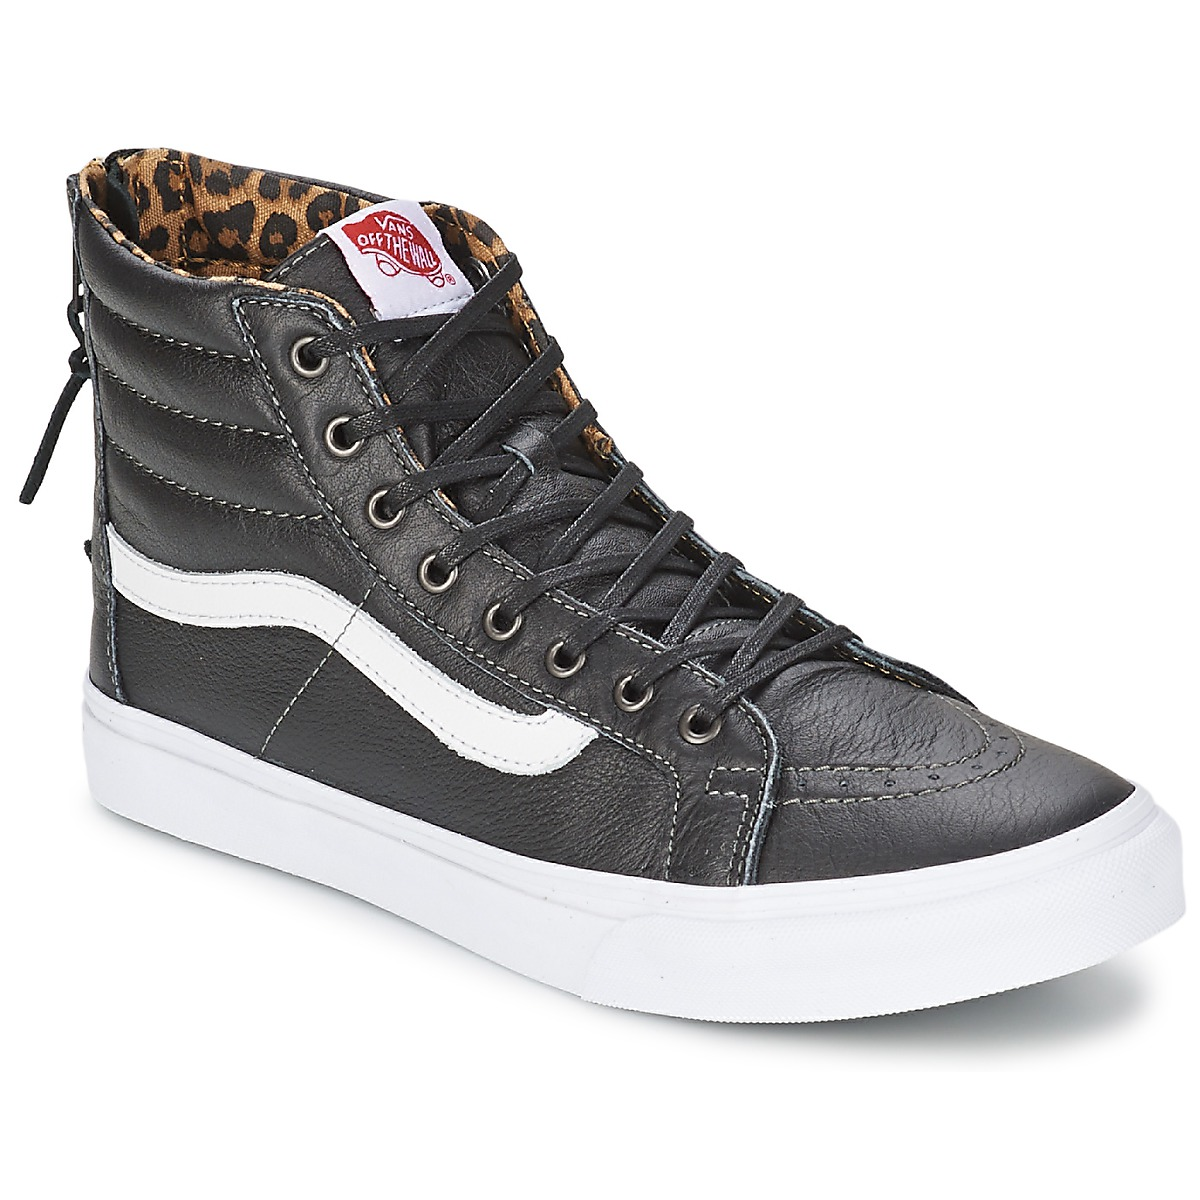 baskets montantes vans sk8 hi slim zip baskets femme spartoo ventes pas. Black Bedroom Furniture Sets. Home Design Ideas